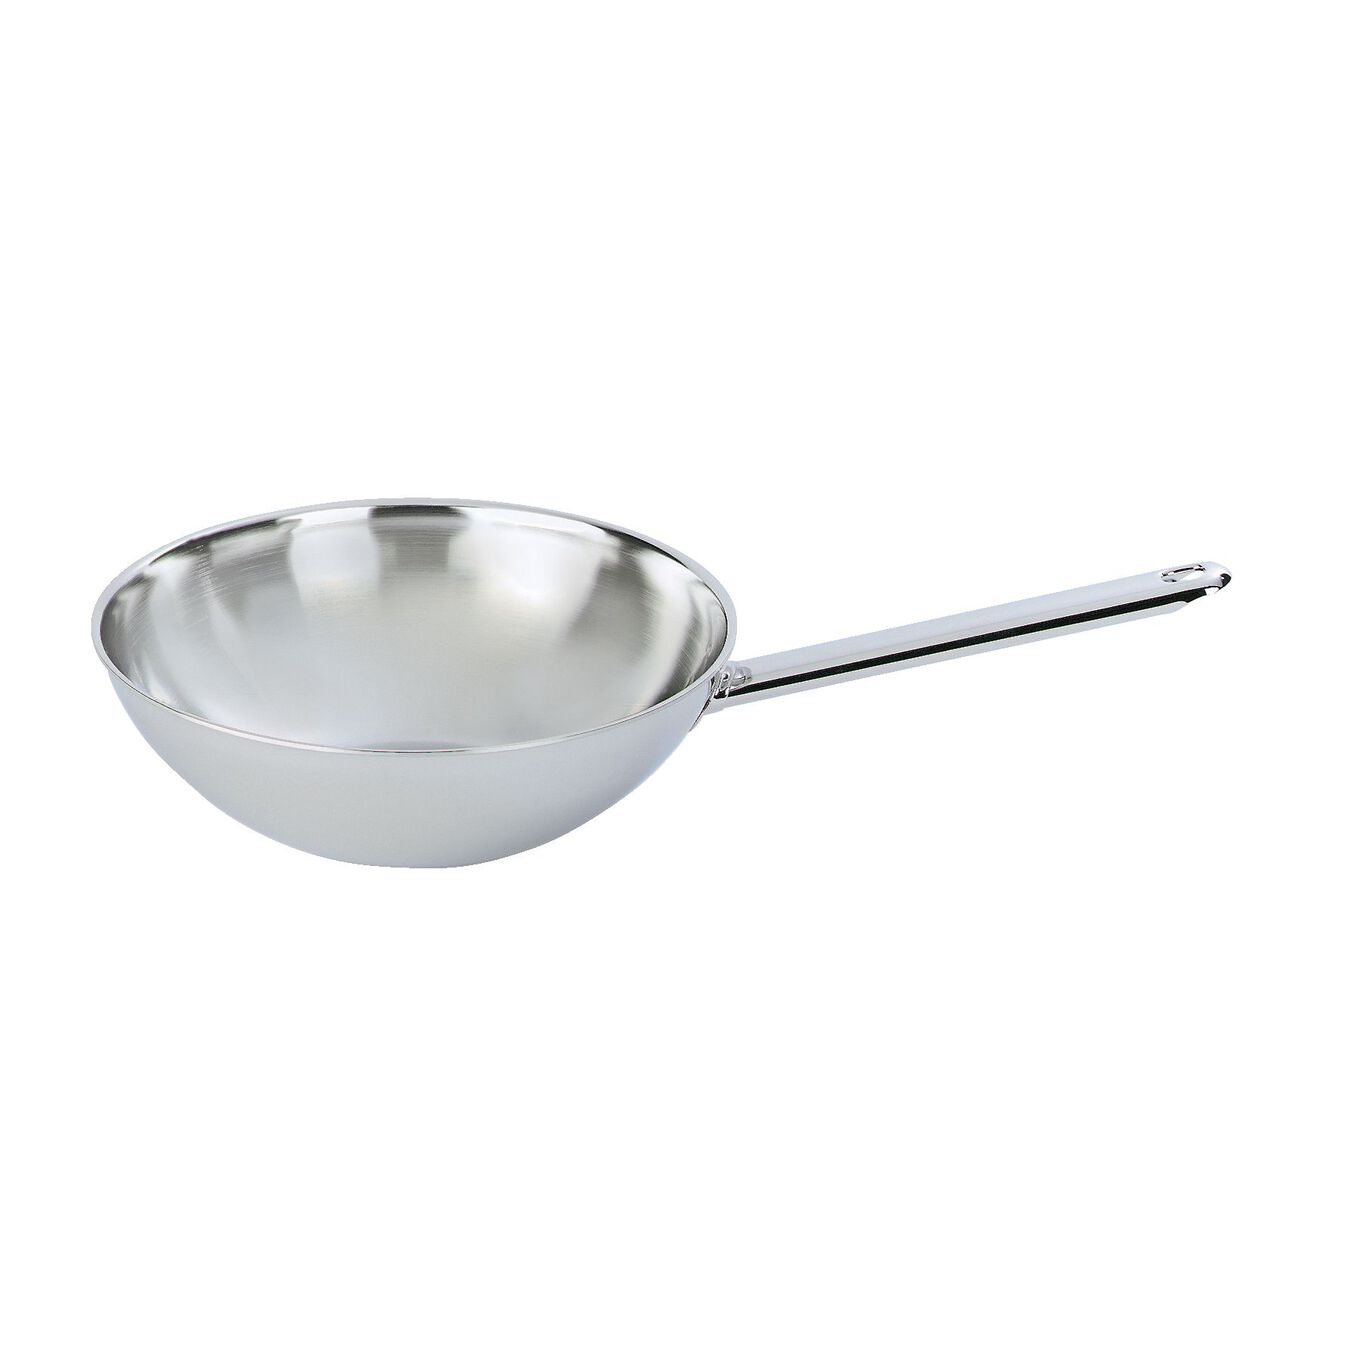 Wok without lid 26 cm, Inox 18/10,,large 1